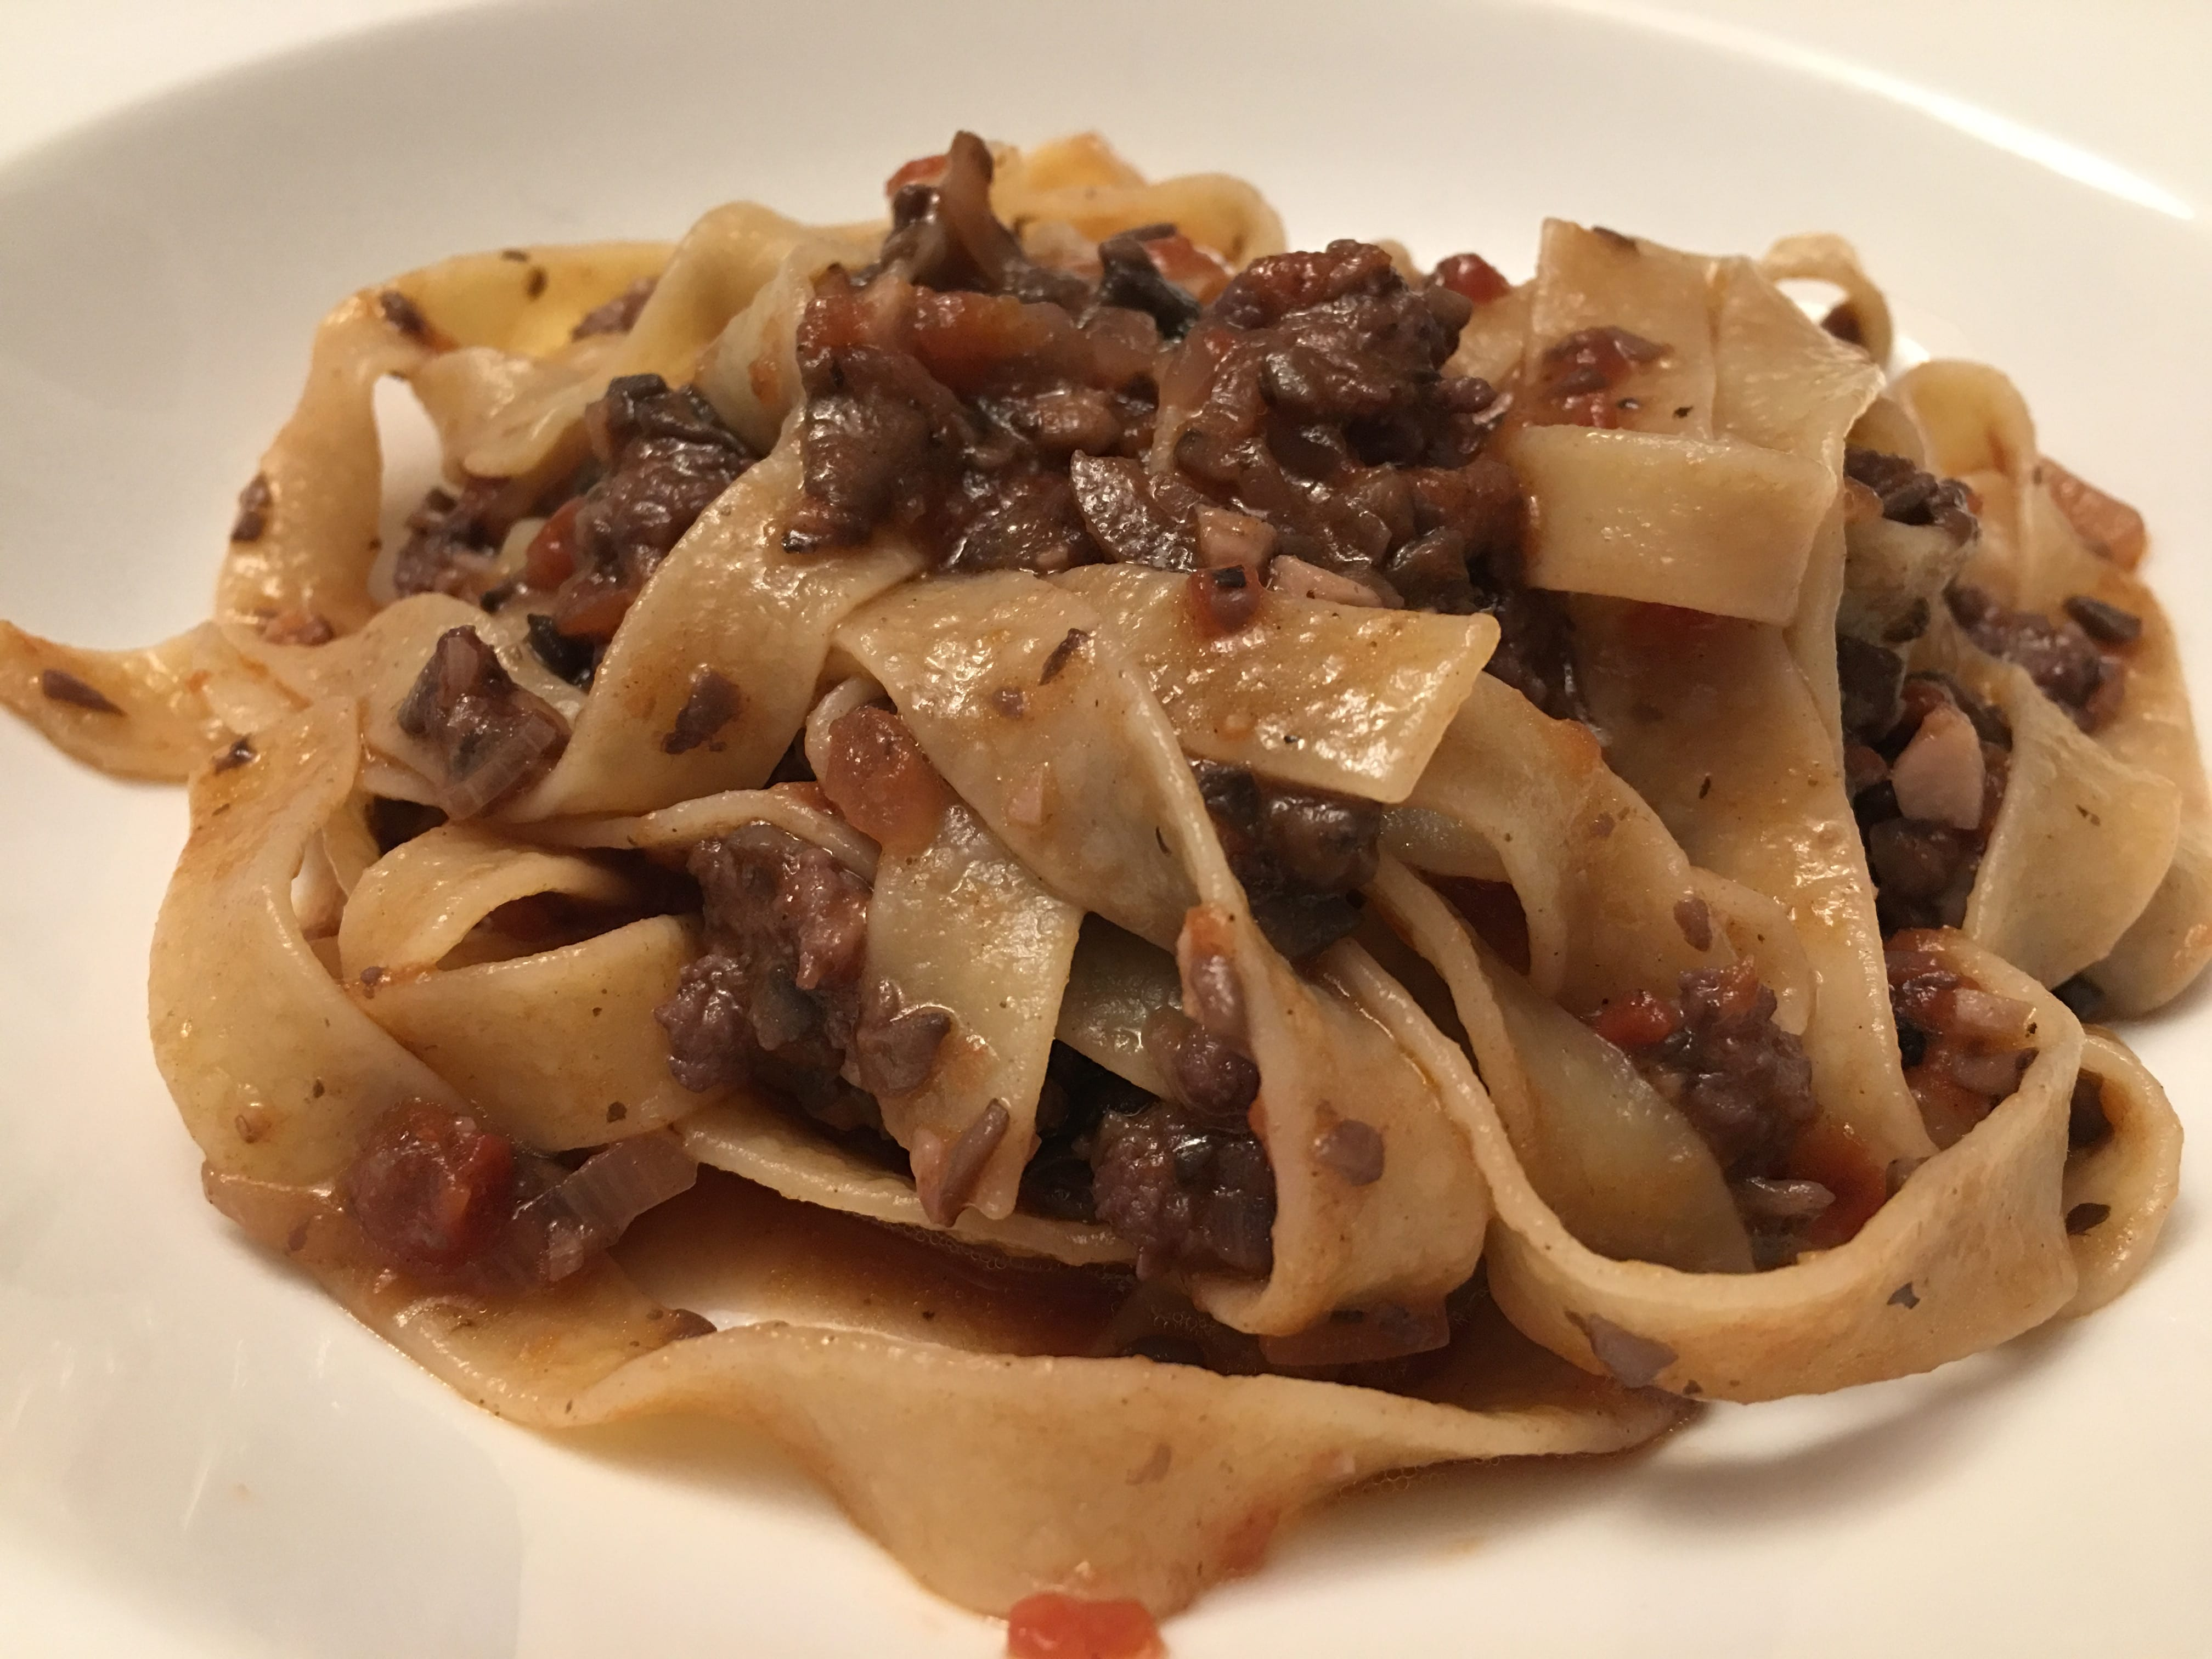 Italian Sausage and Mushroom Ragu with Pappardelle from Christopher Kimball's Milk Street